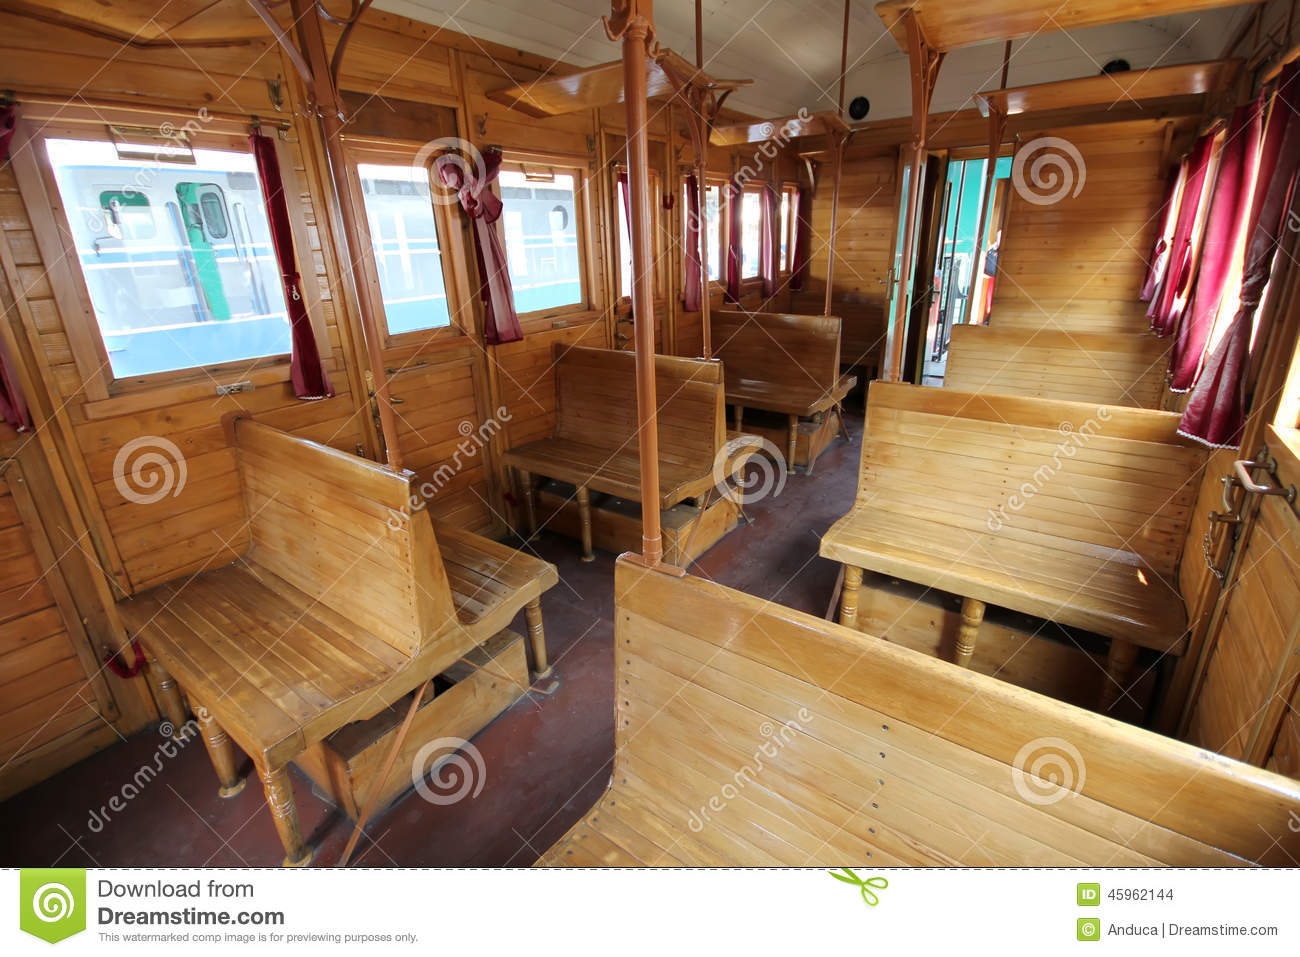 old train wagon interior stock photo image of travelling 45962144. Black Bedroom Furniture Sets. Home Design Ideas